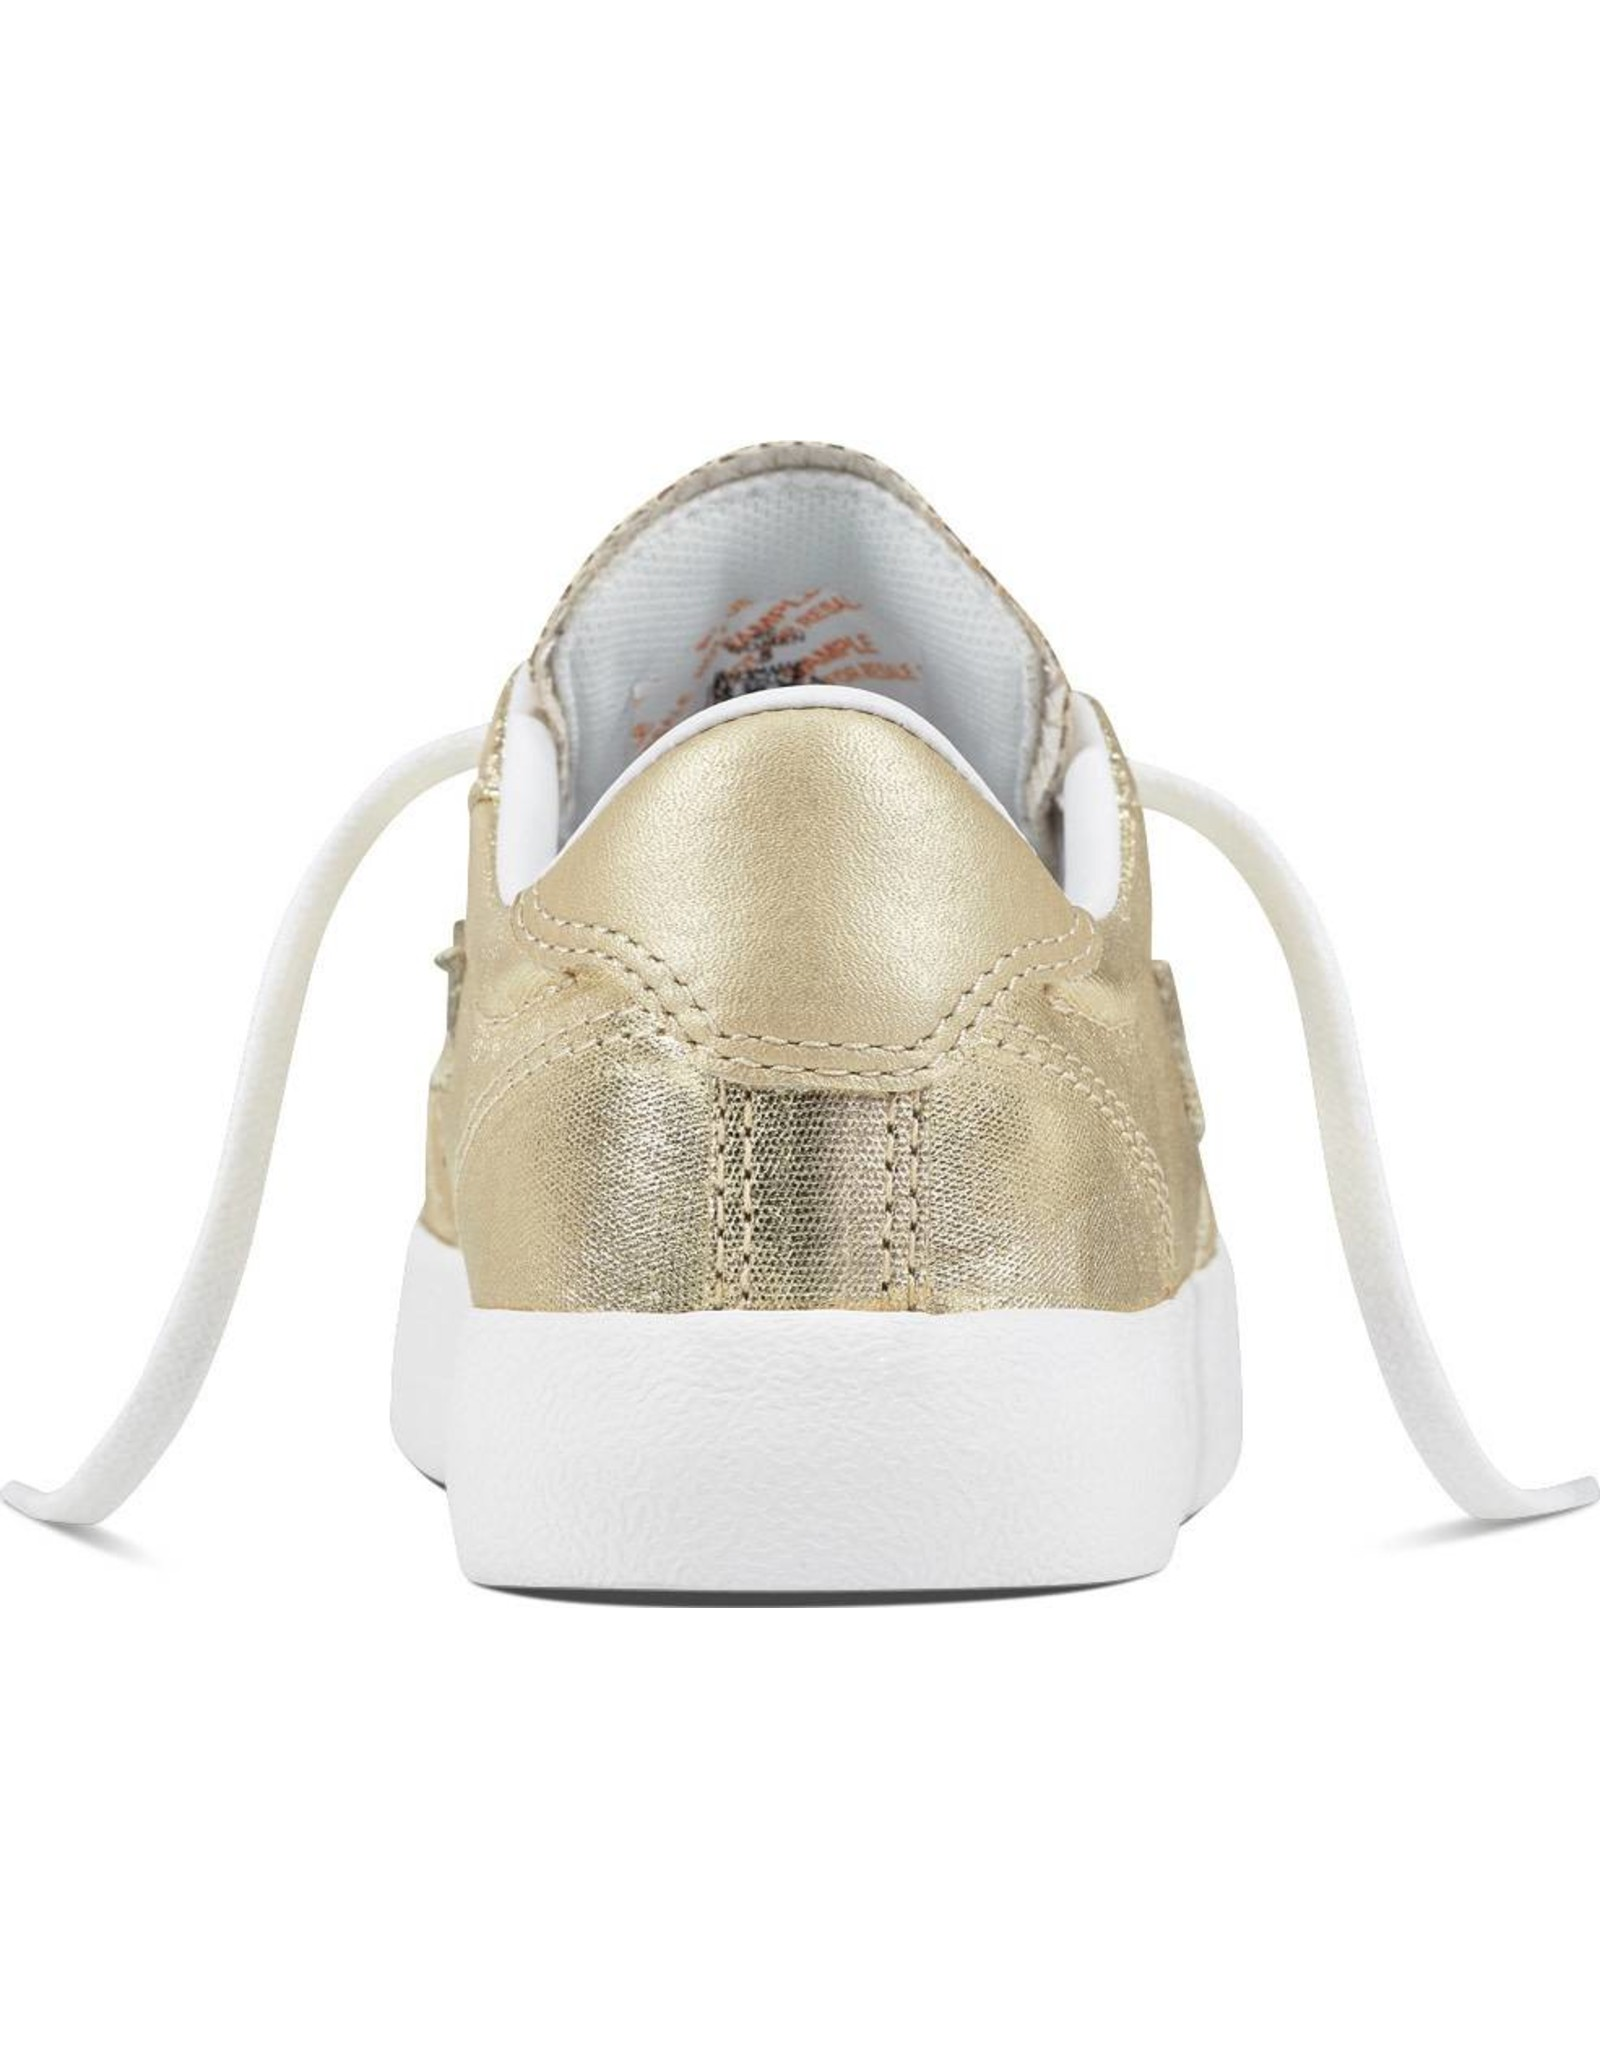 CONVERSE BREAKPOINT OX LIGHT GOLD/WHITE/WHITE C786LG-555948C